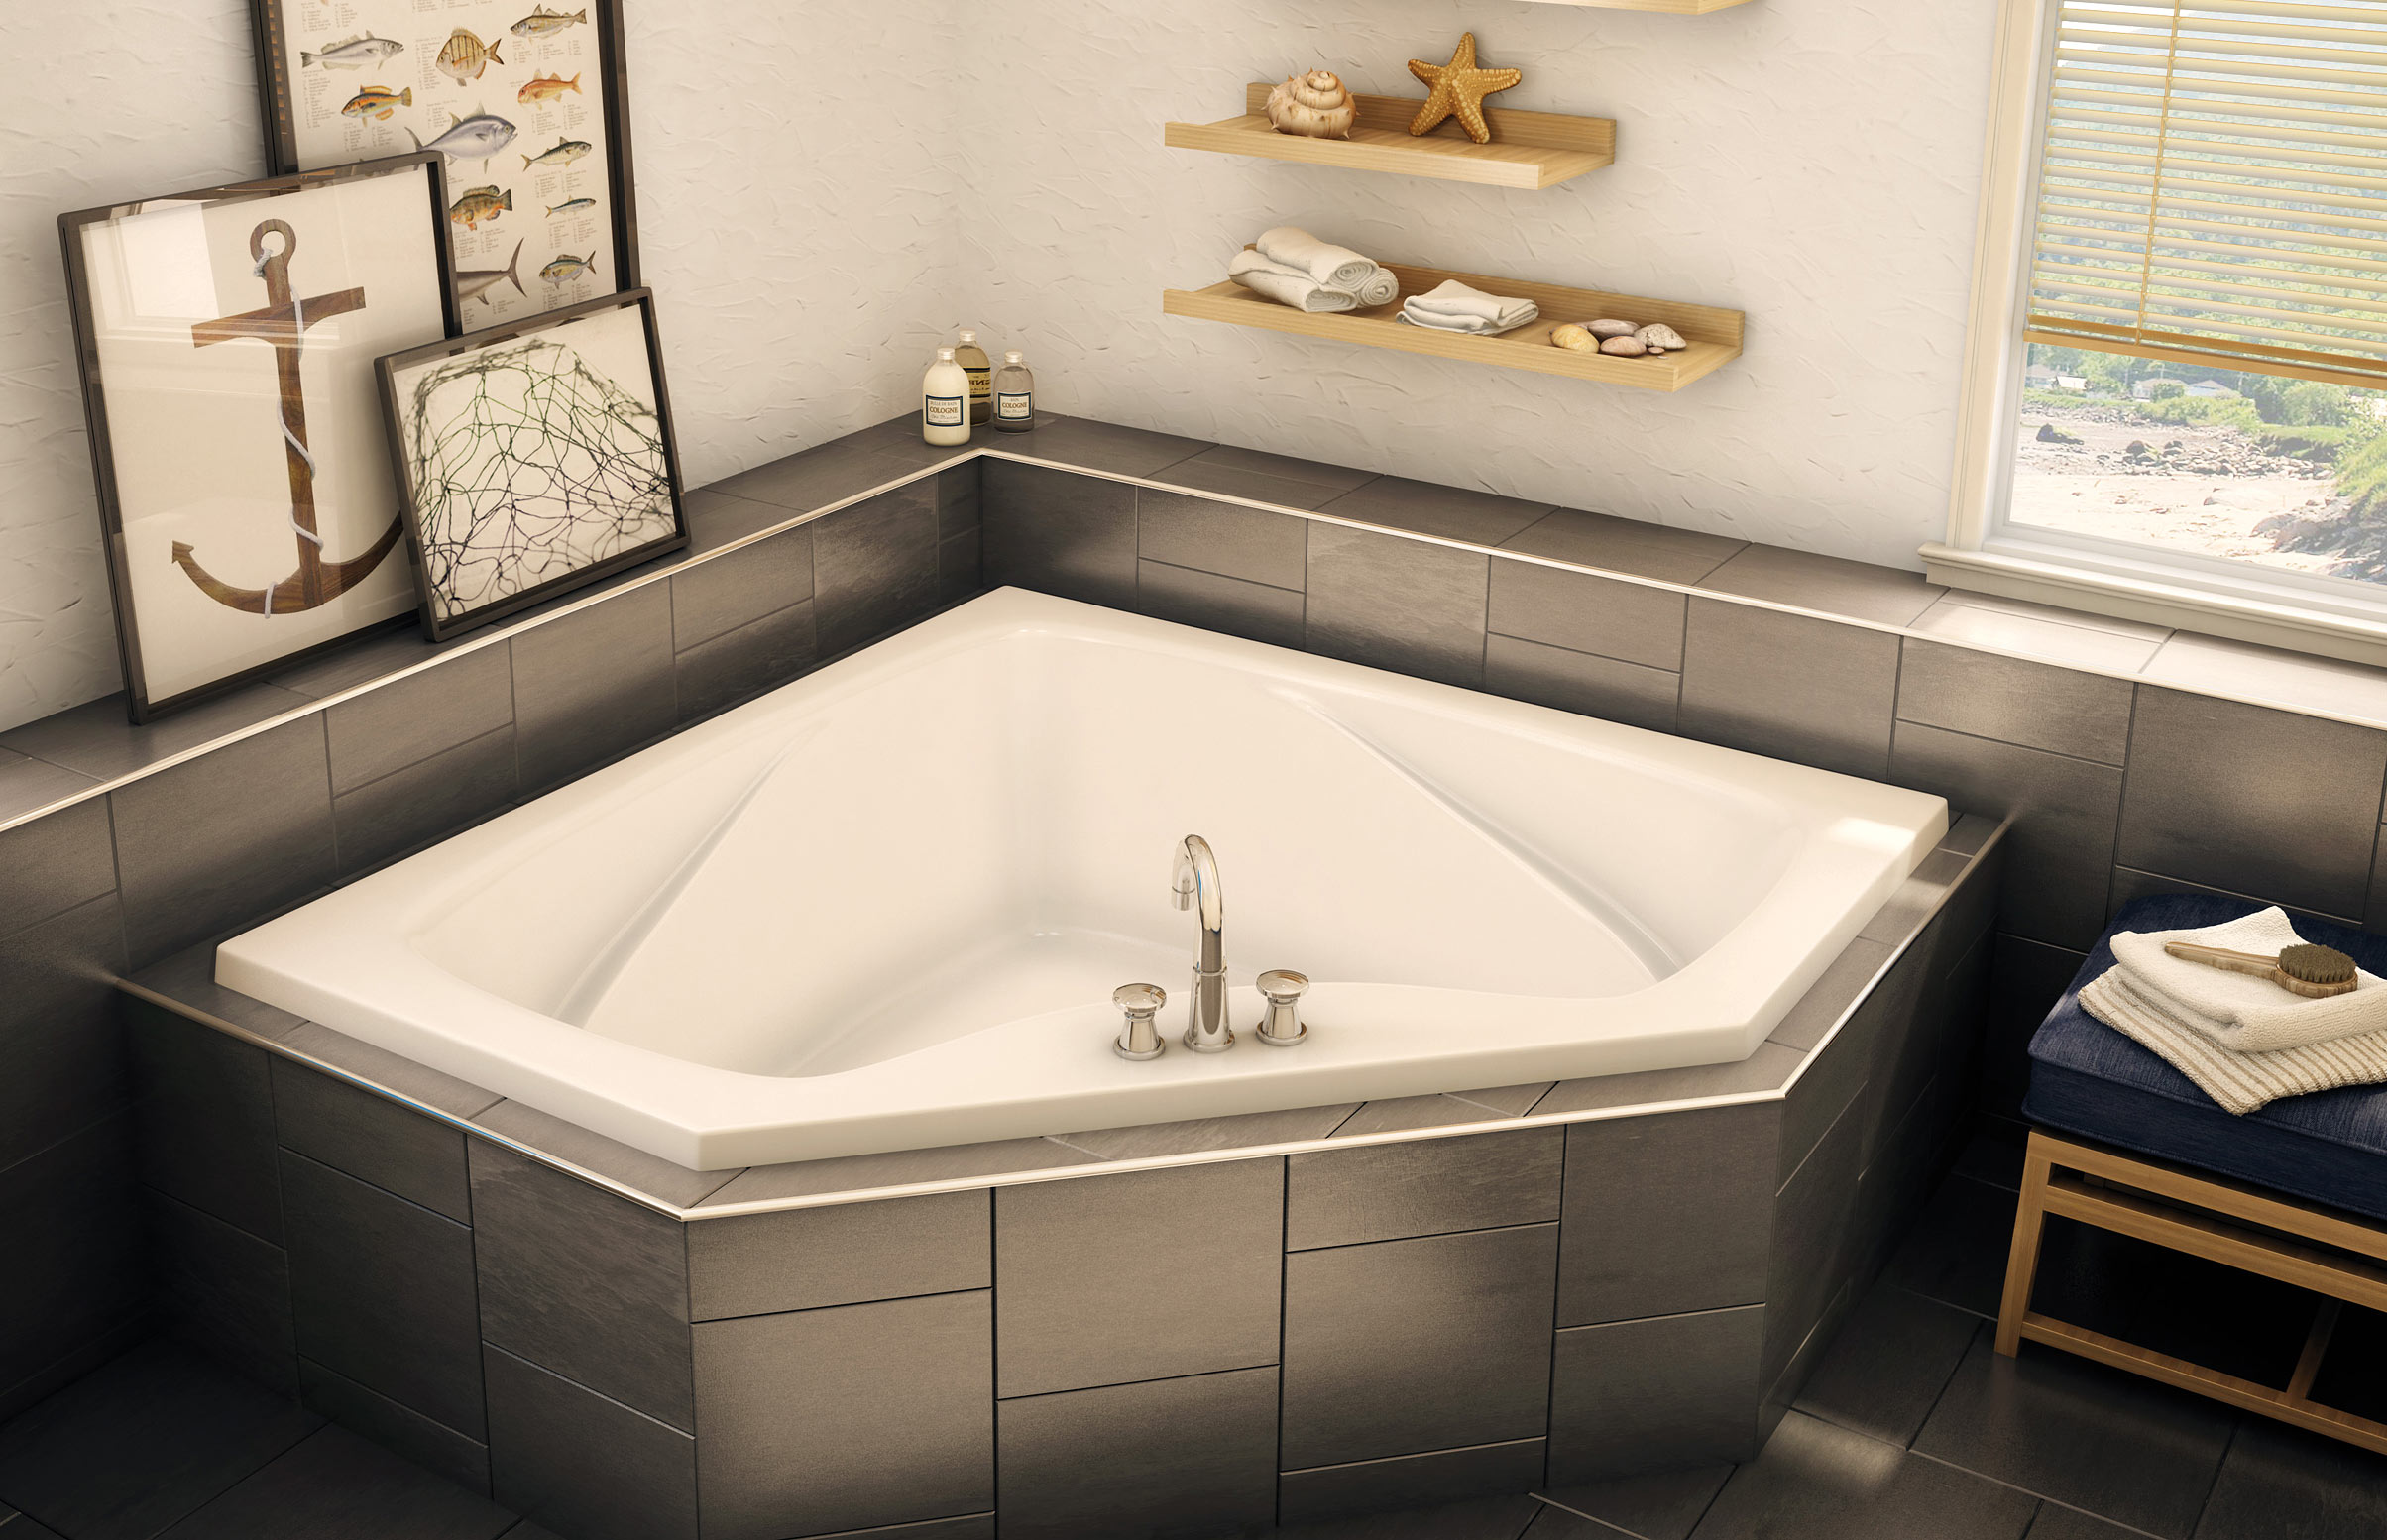 Bathtub Installation Cost Guide And Best Tips ContractorCulture